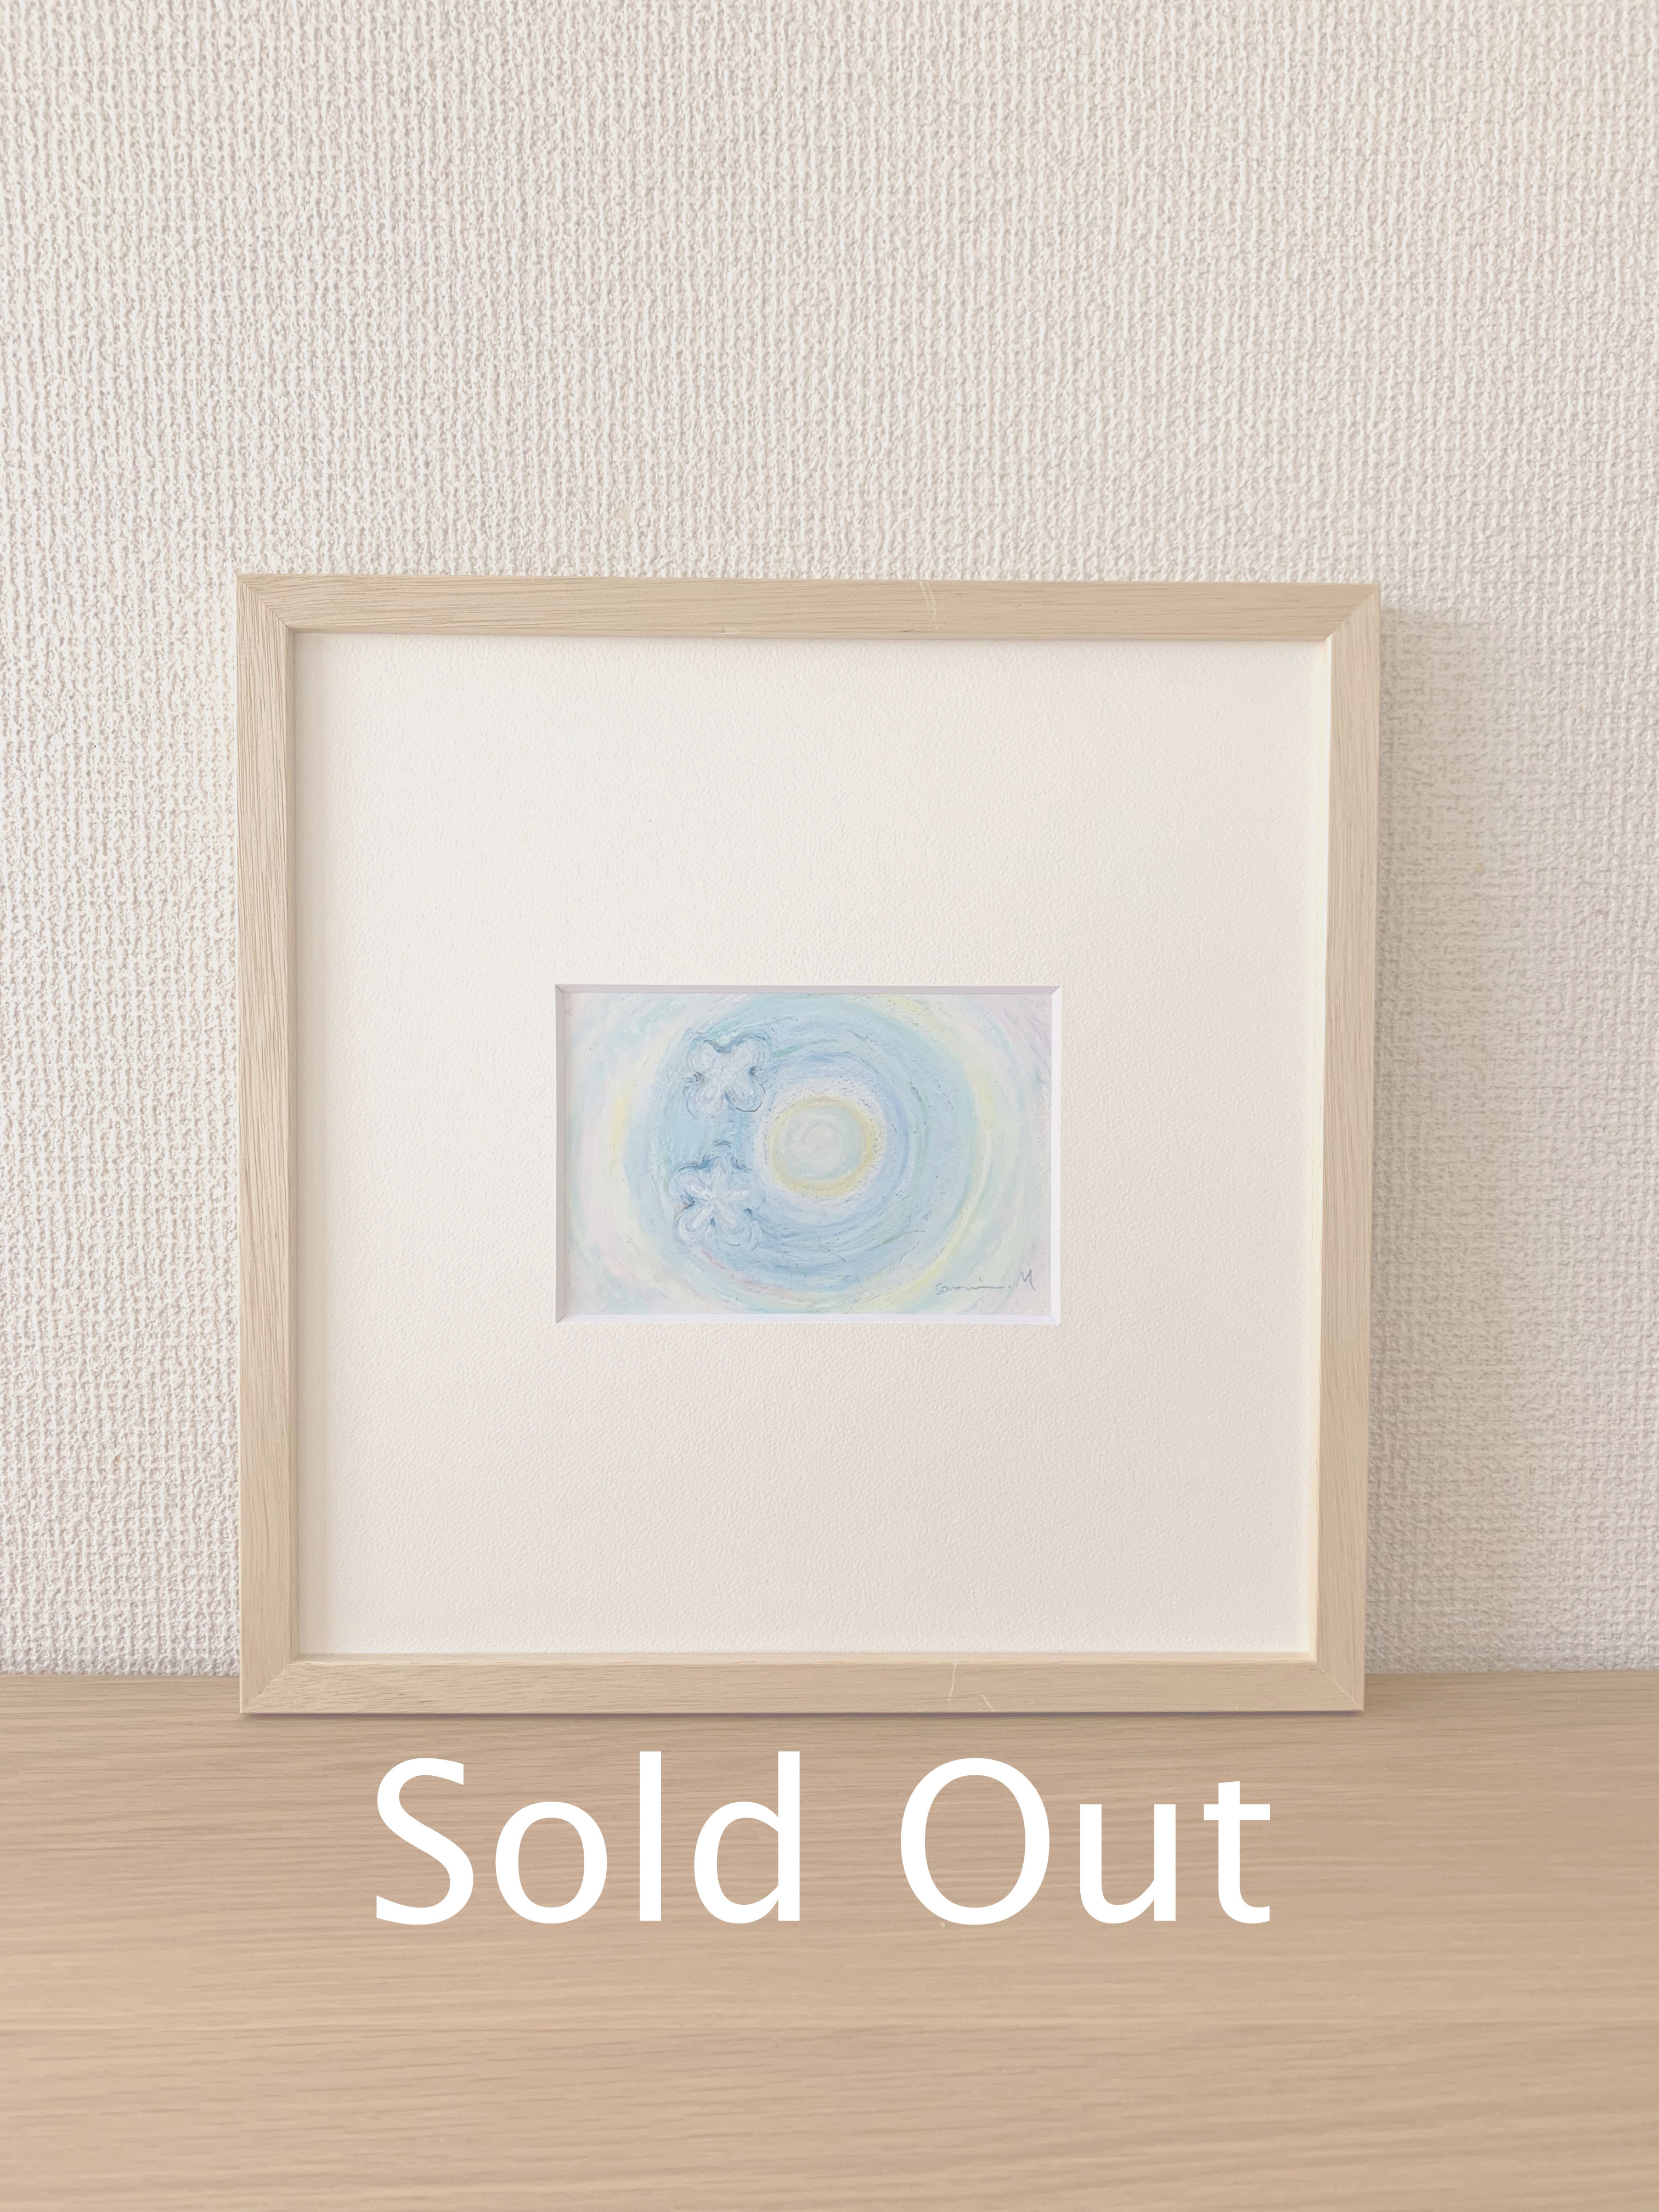 Ⅰ.Lemuria sold out